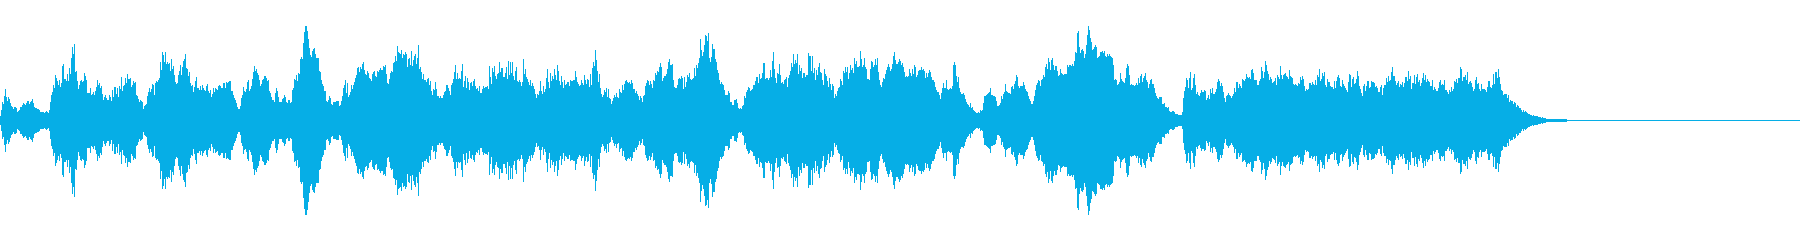 Fanfare/Jingle that achieves the goal and sounds's reproduced waveform